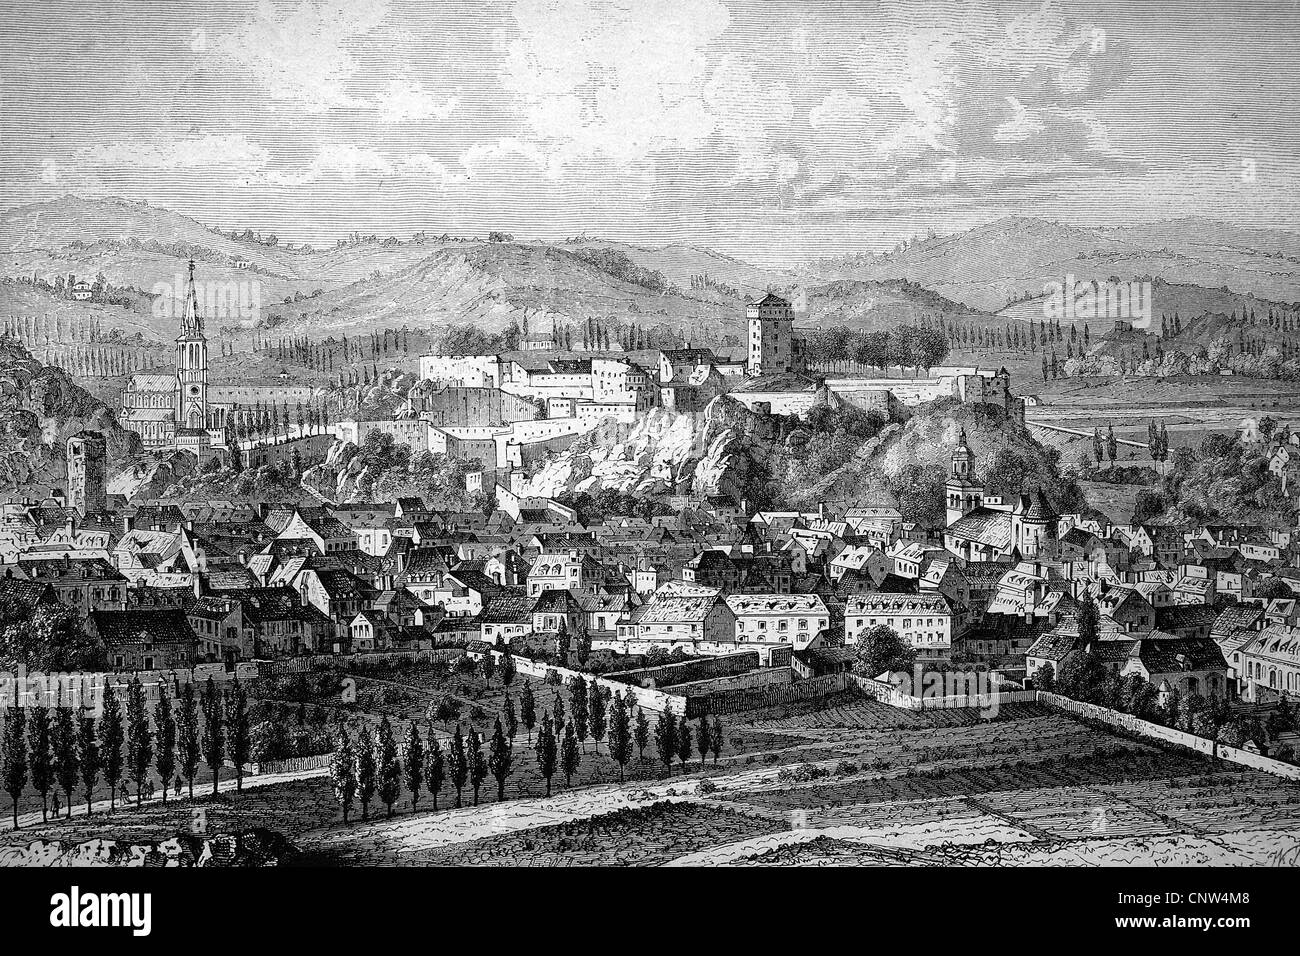 View over the pilgrimage town of Lourdes, France, historical wood engraving, 1886 - Stock Image